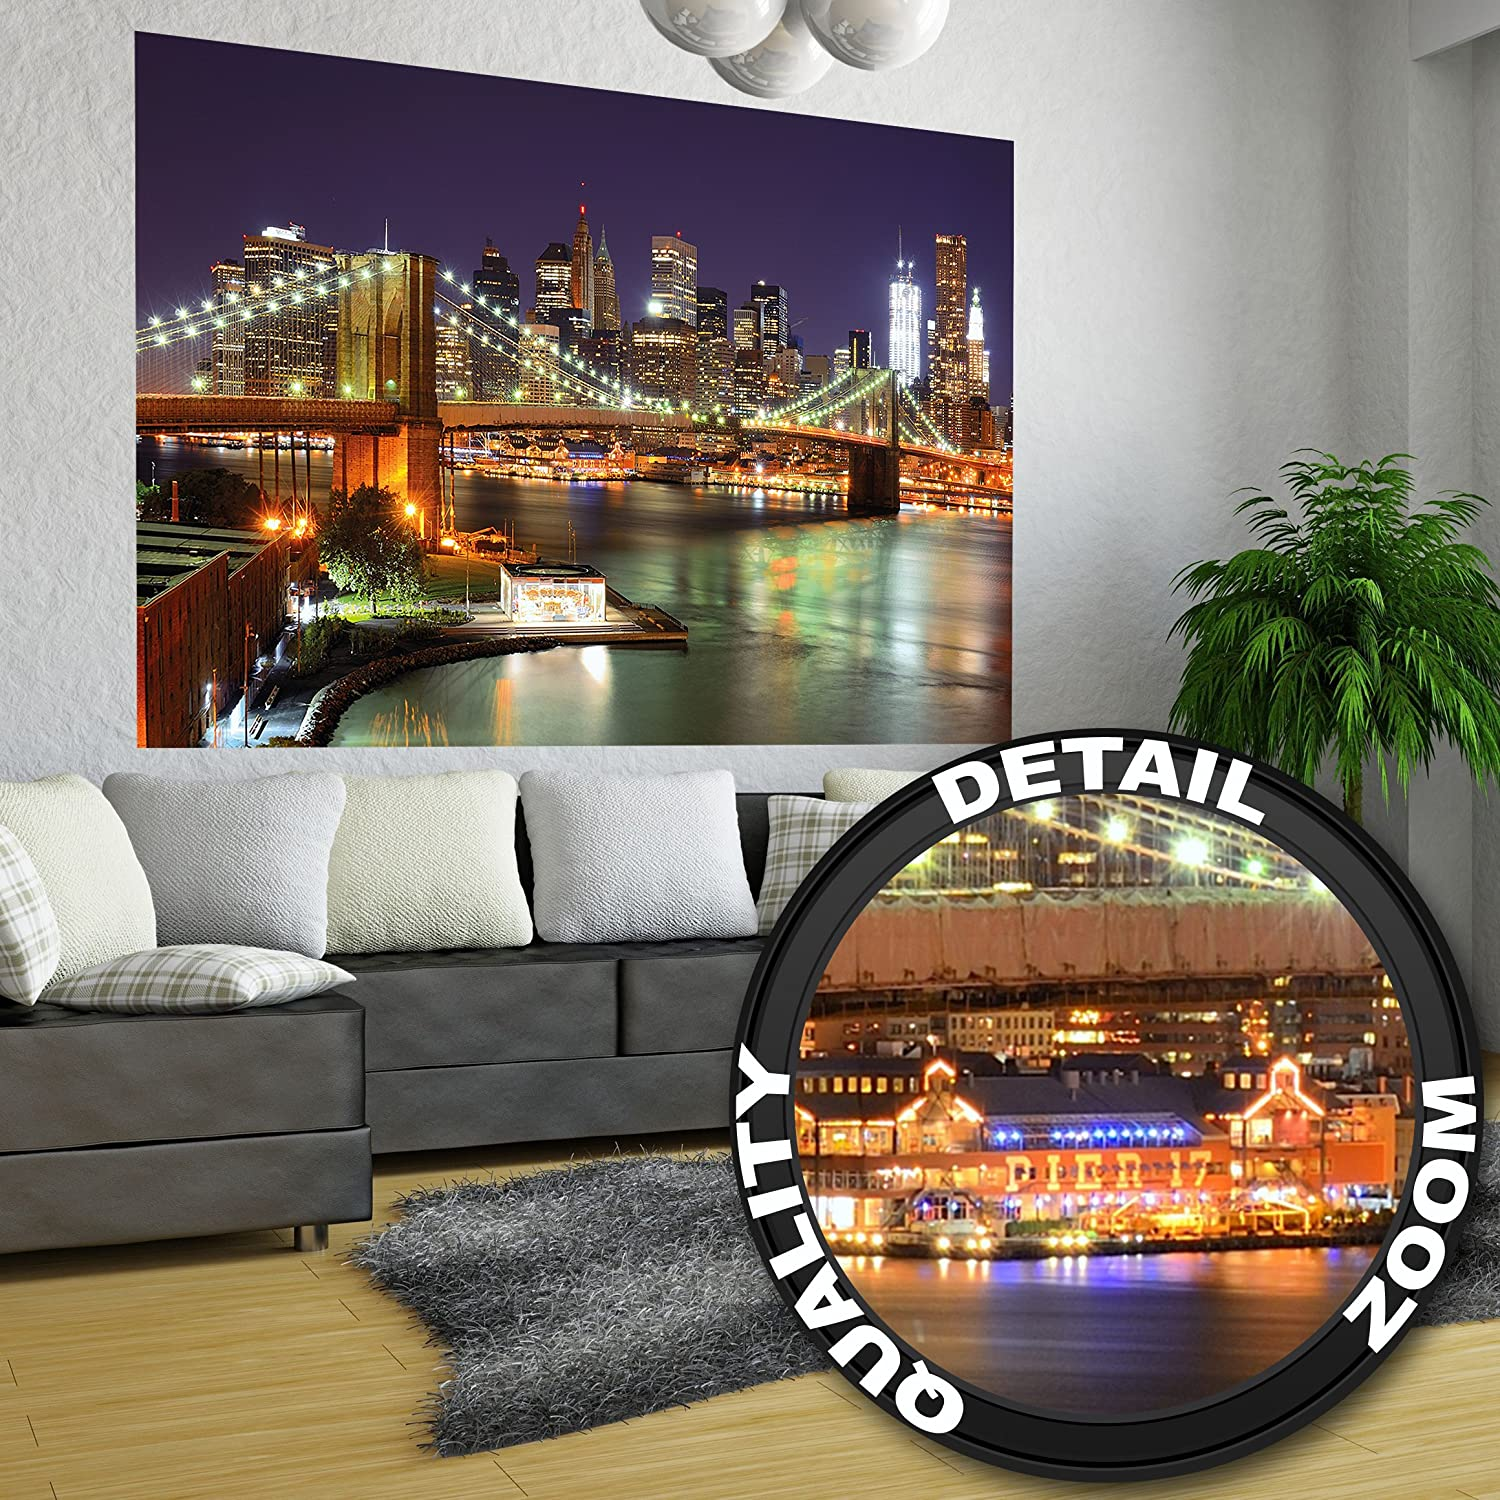 xxl poster brooklyn bridge new york city skyline xxl wallpaper